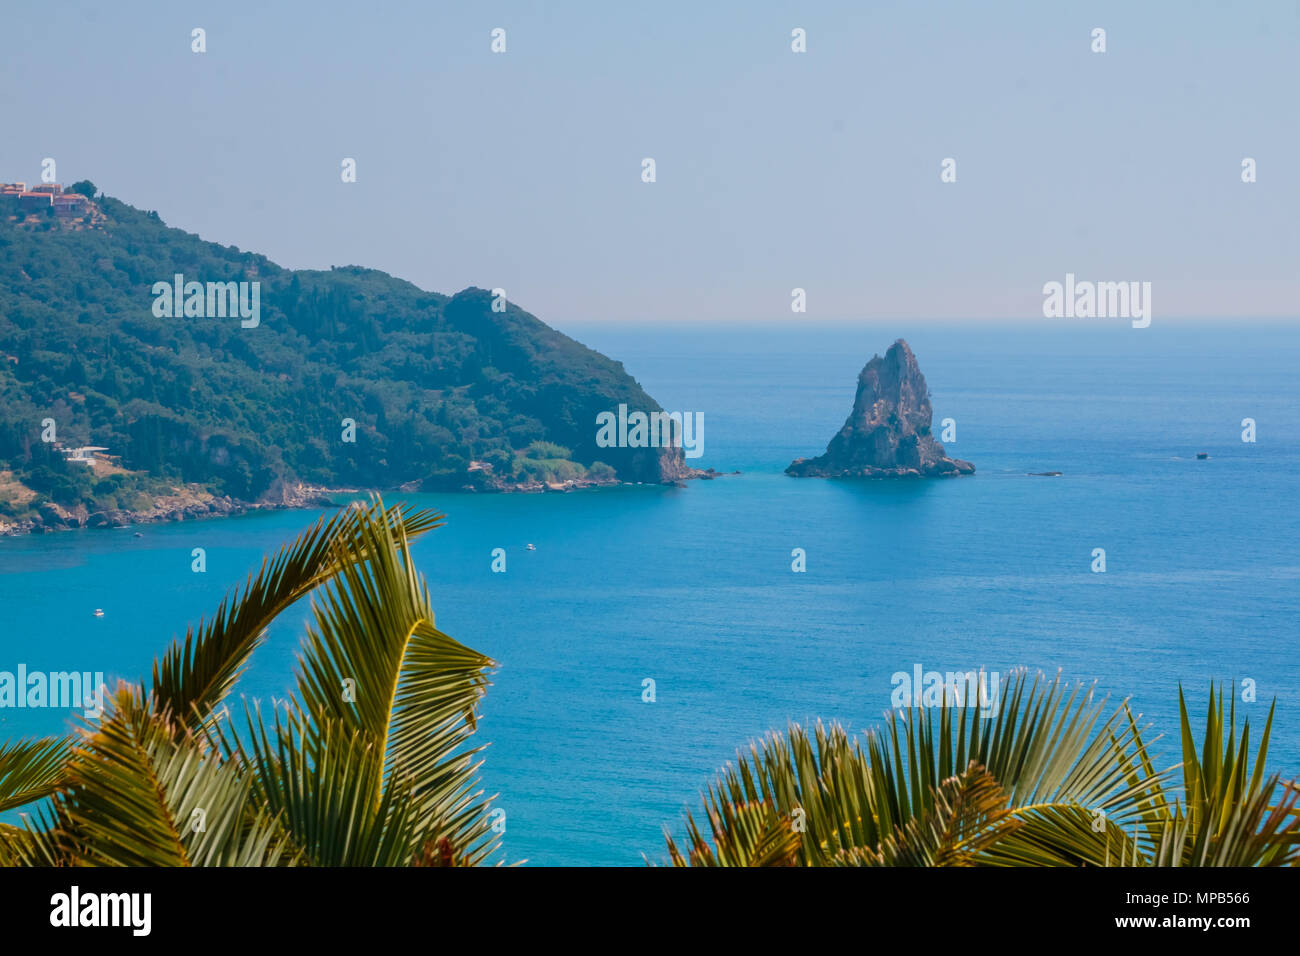 Bird s eye view of Palaiokastritsa bay in North Corfu Greece. Bay with clear crystal azur water. Europe trip concept - Stock Image